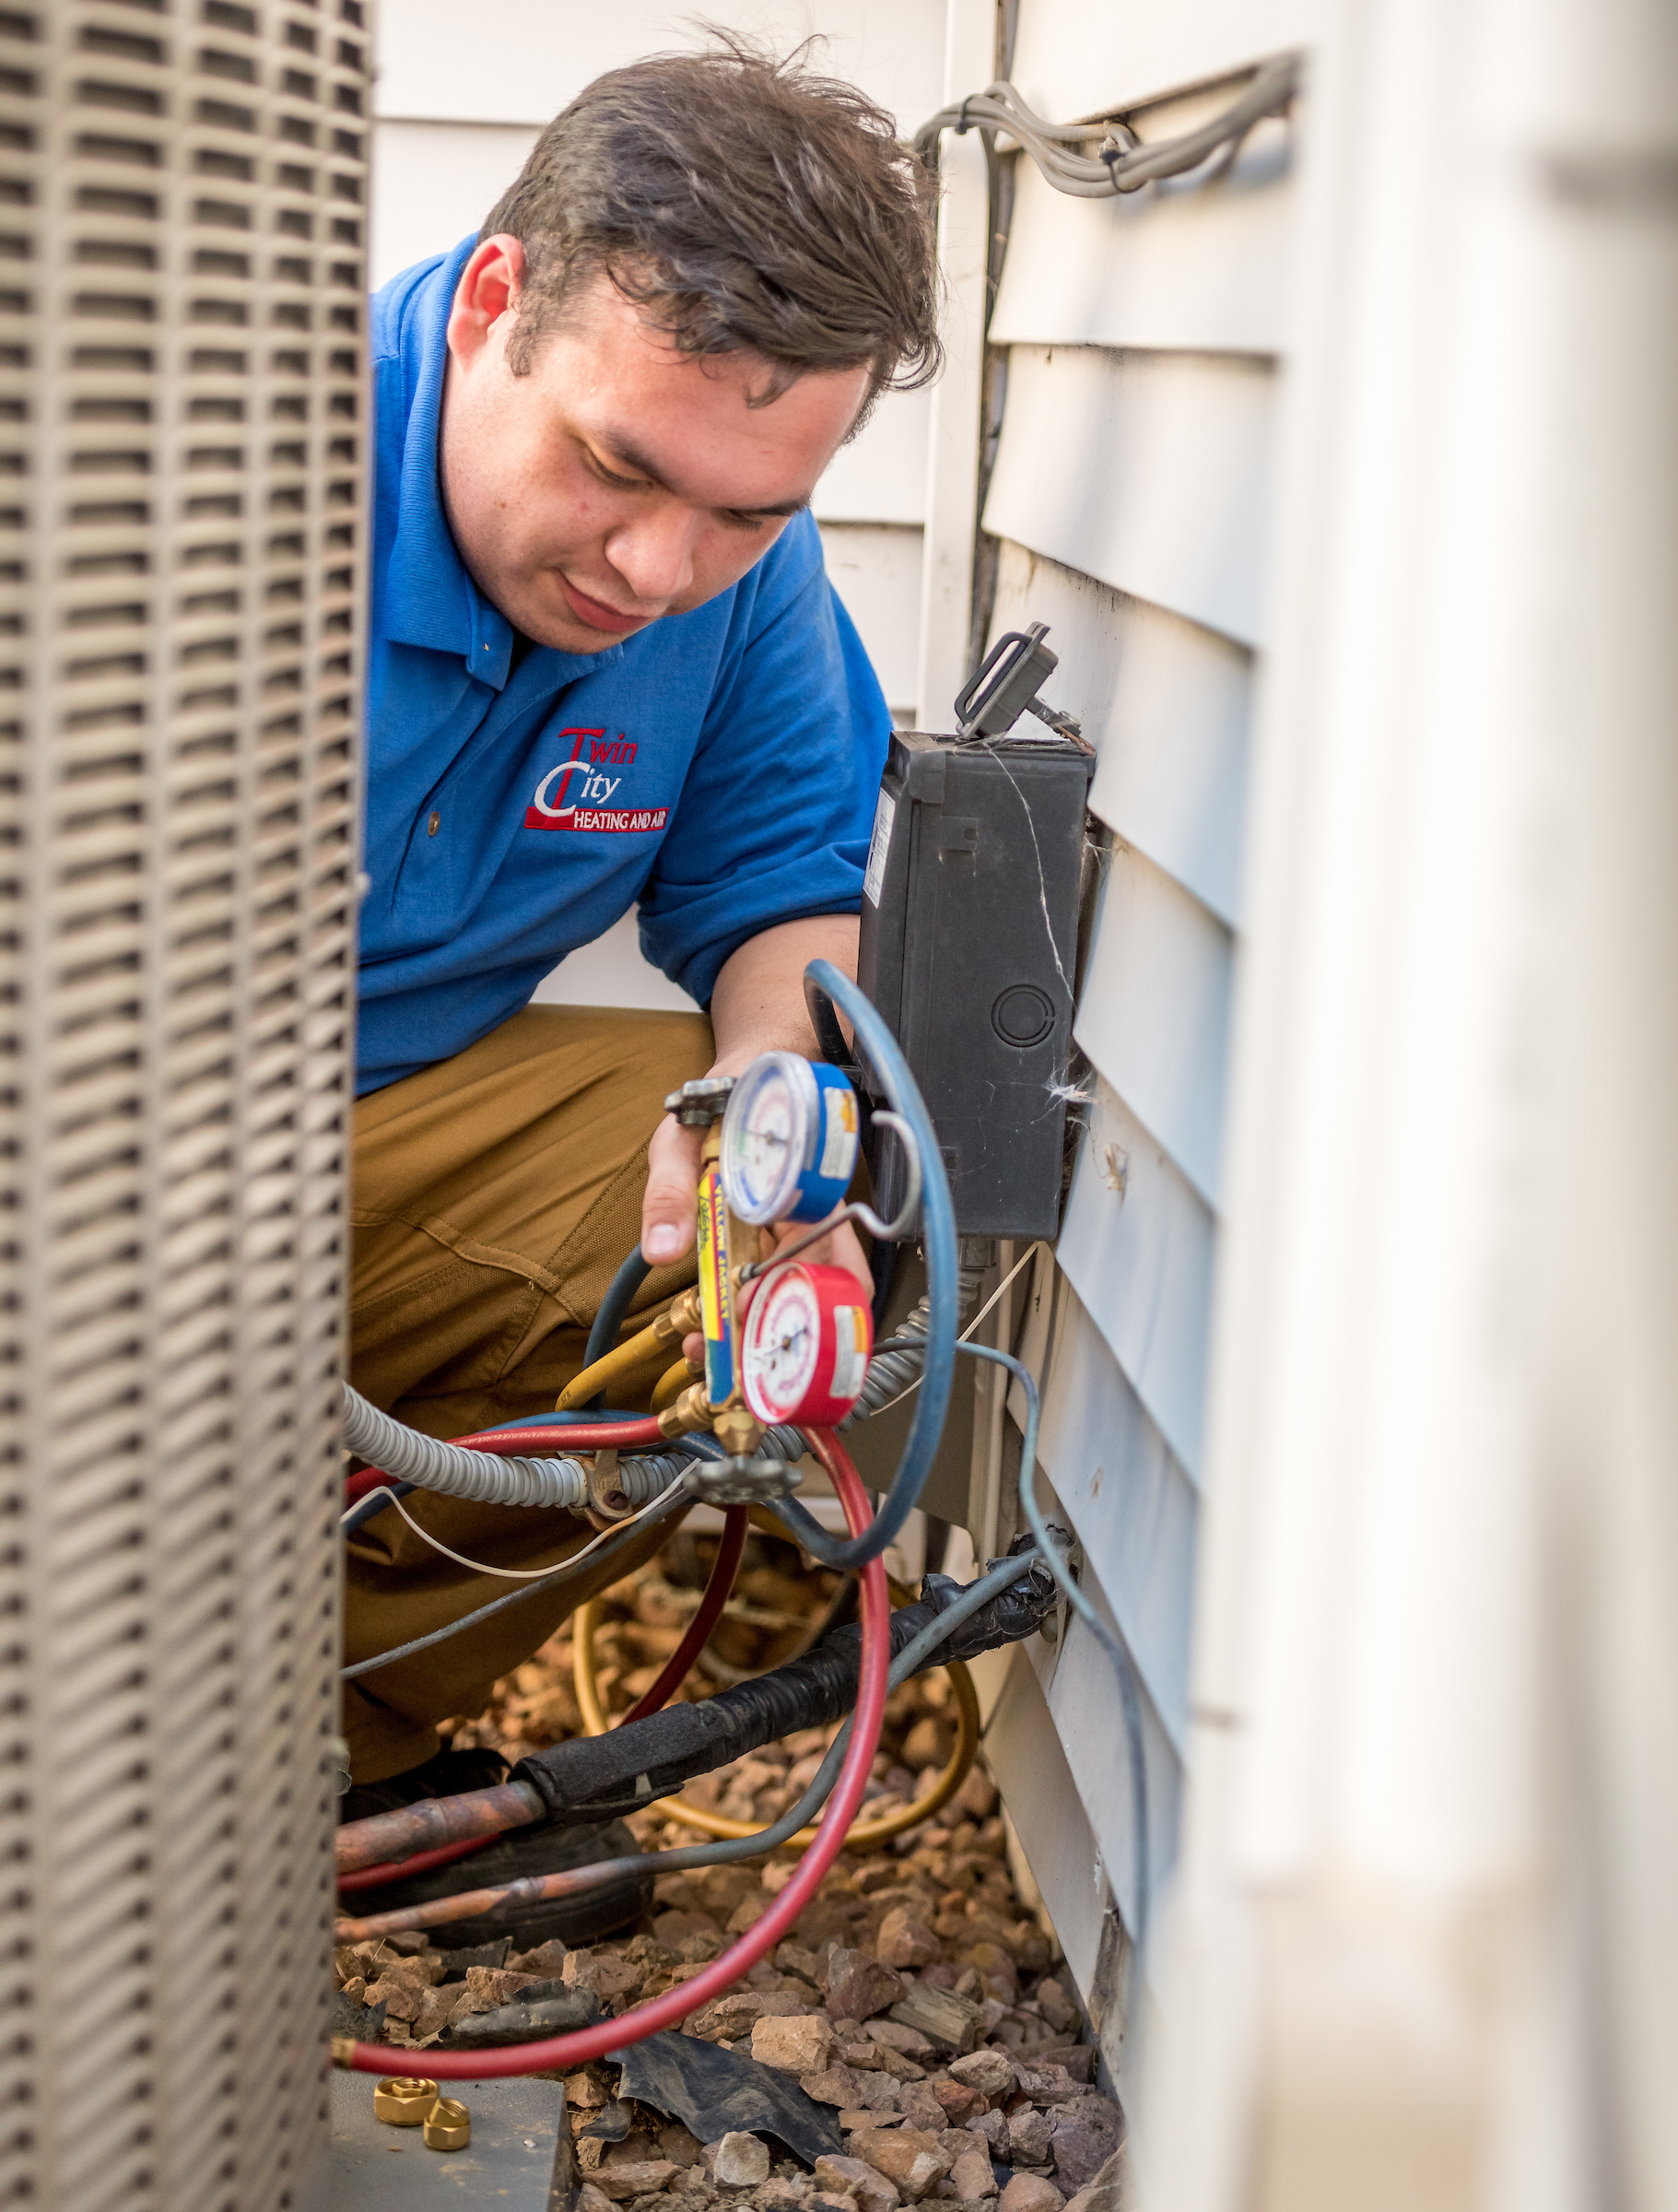 Twin-Cities-Heating-and-Air-HVAC-Minneapolis-MN-commercial-photographer-July 20, 2016--014.jpg